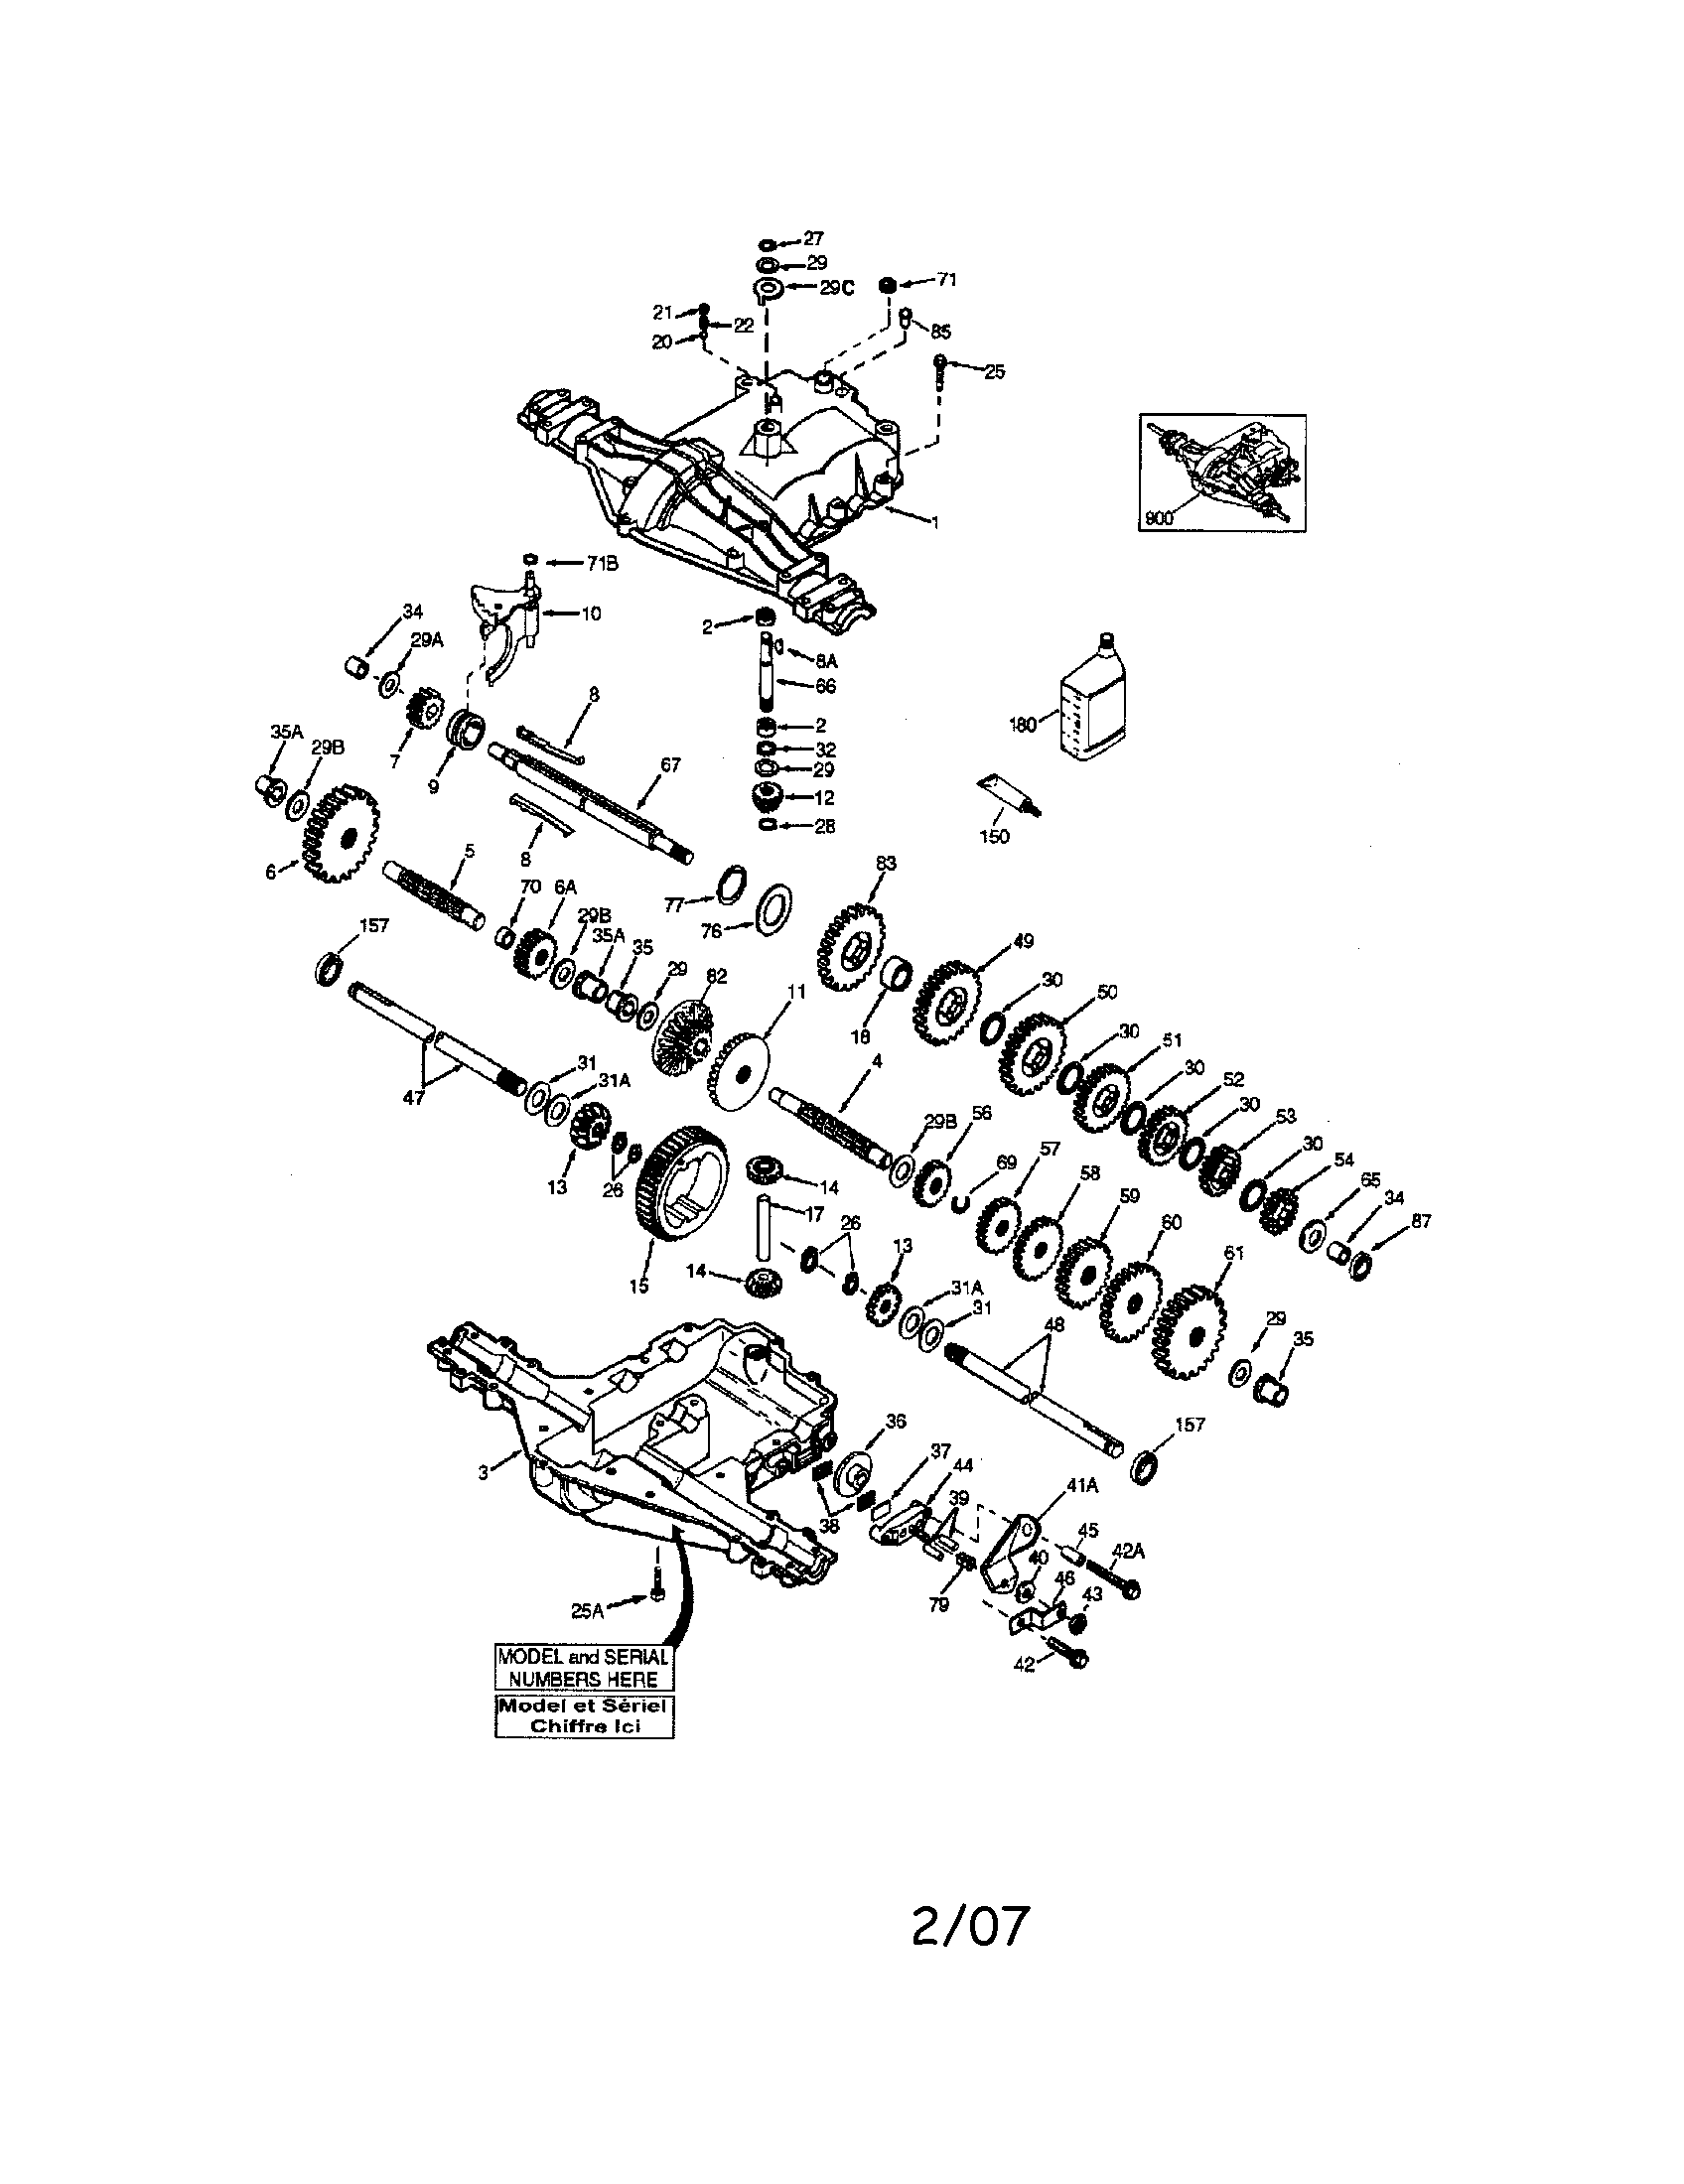 Peerless Transaxle Diagram Amp Parts List For Model